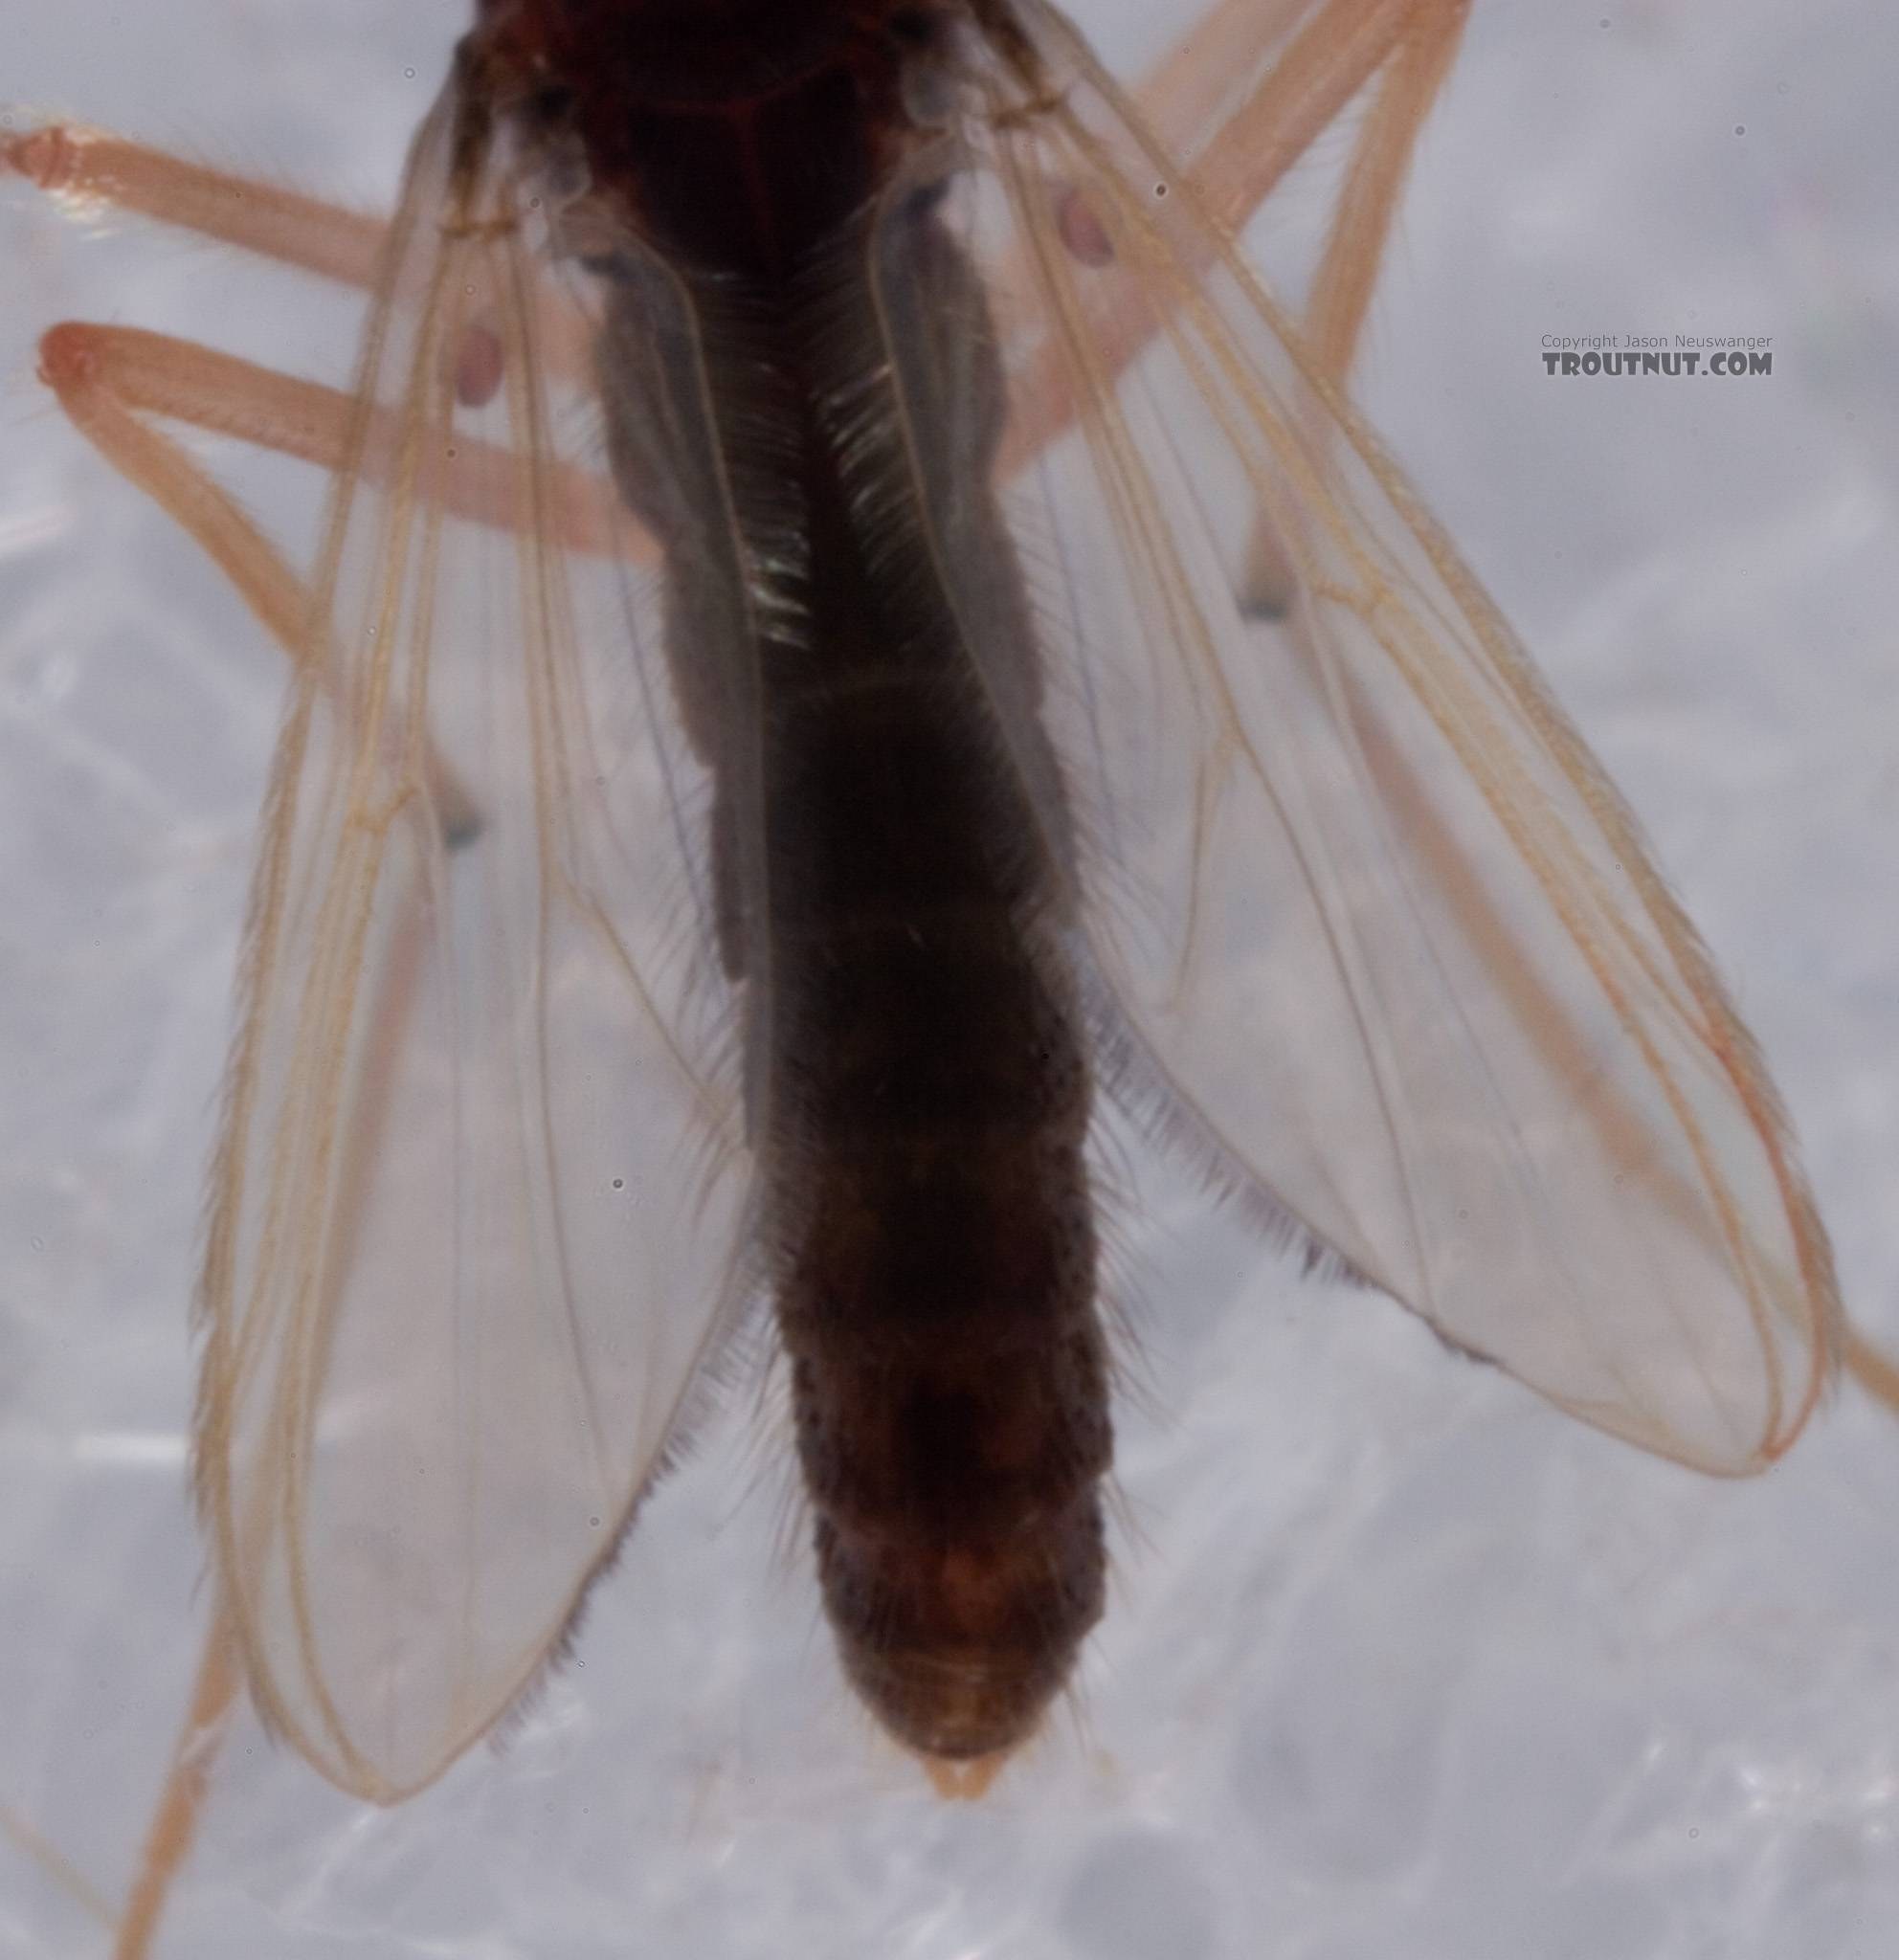 Chironomidae (Midges) Midge Adult from Mystery Creek #62 in New York